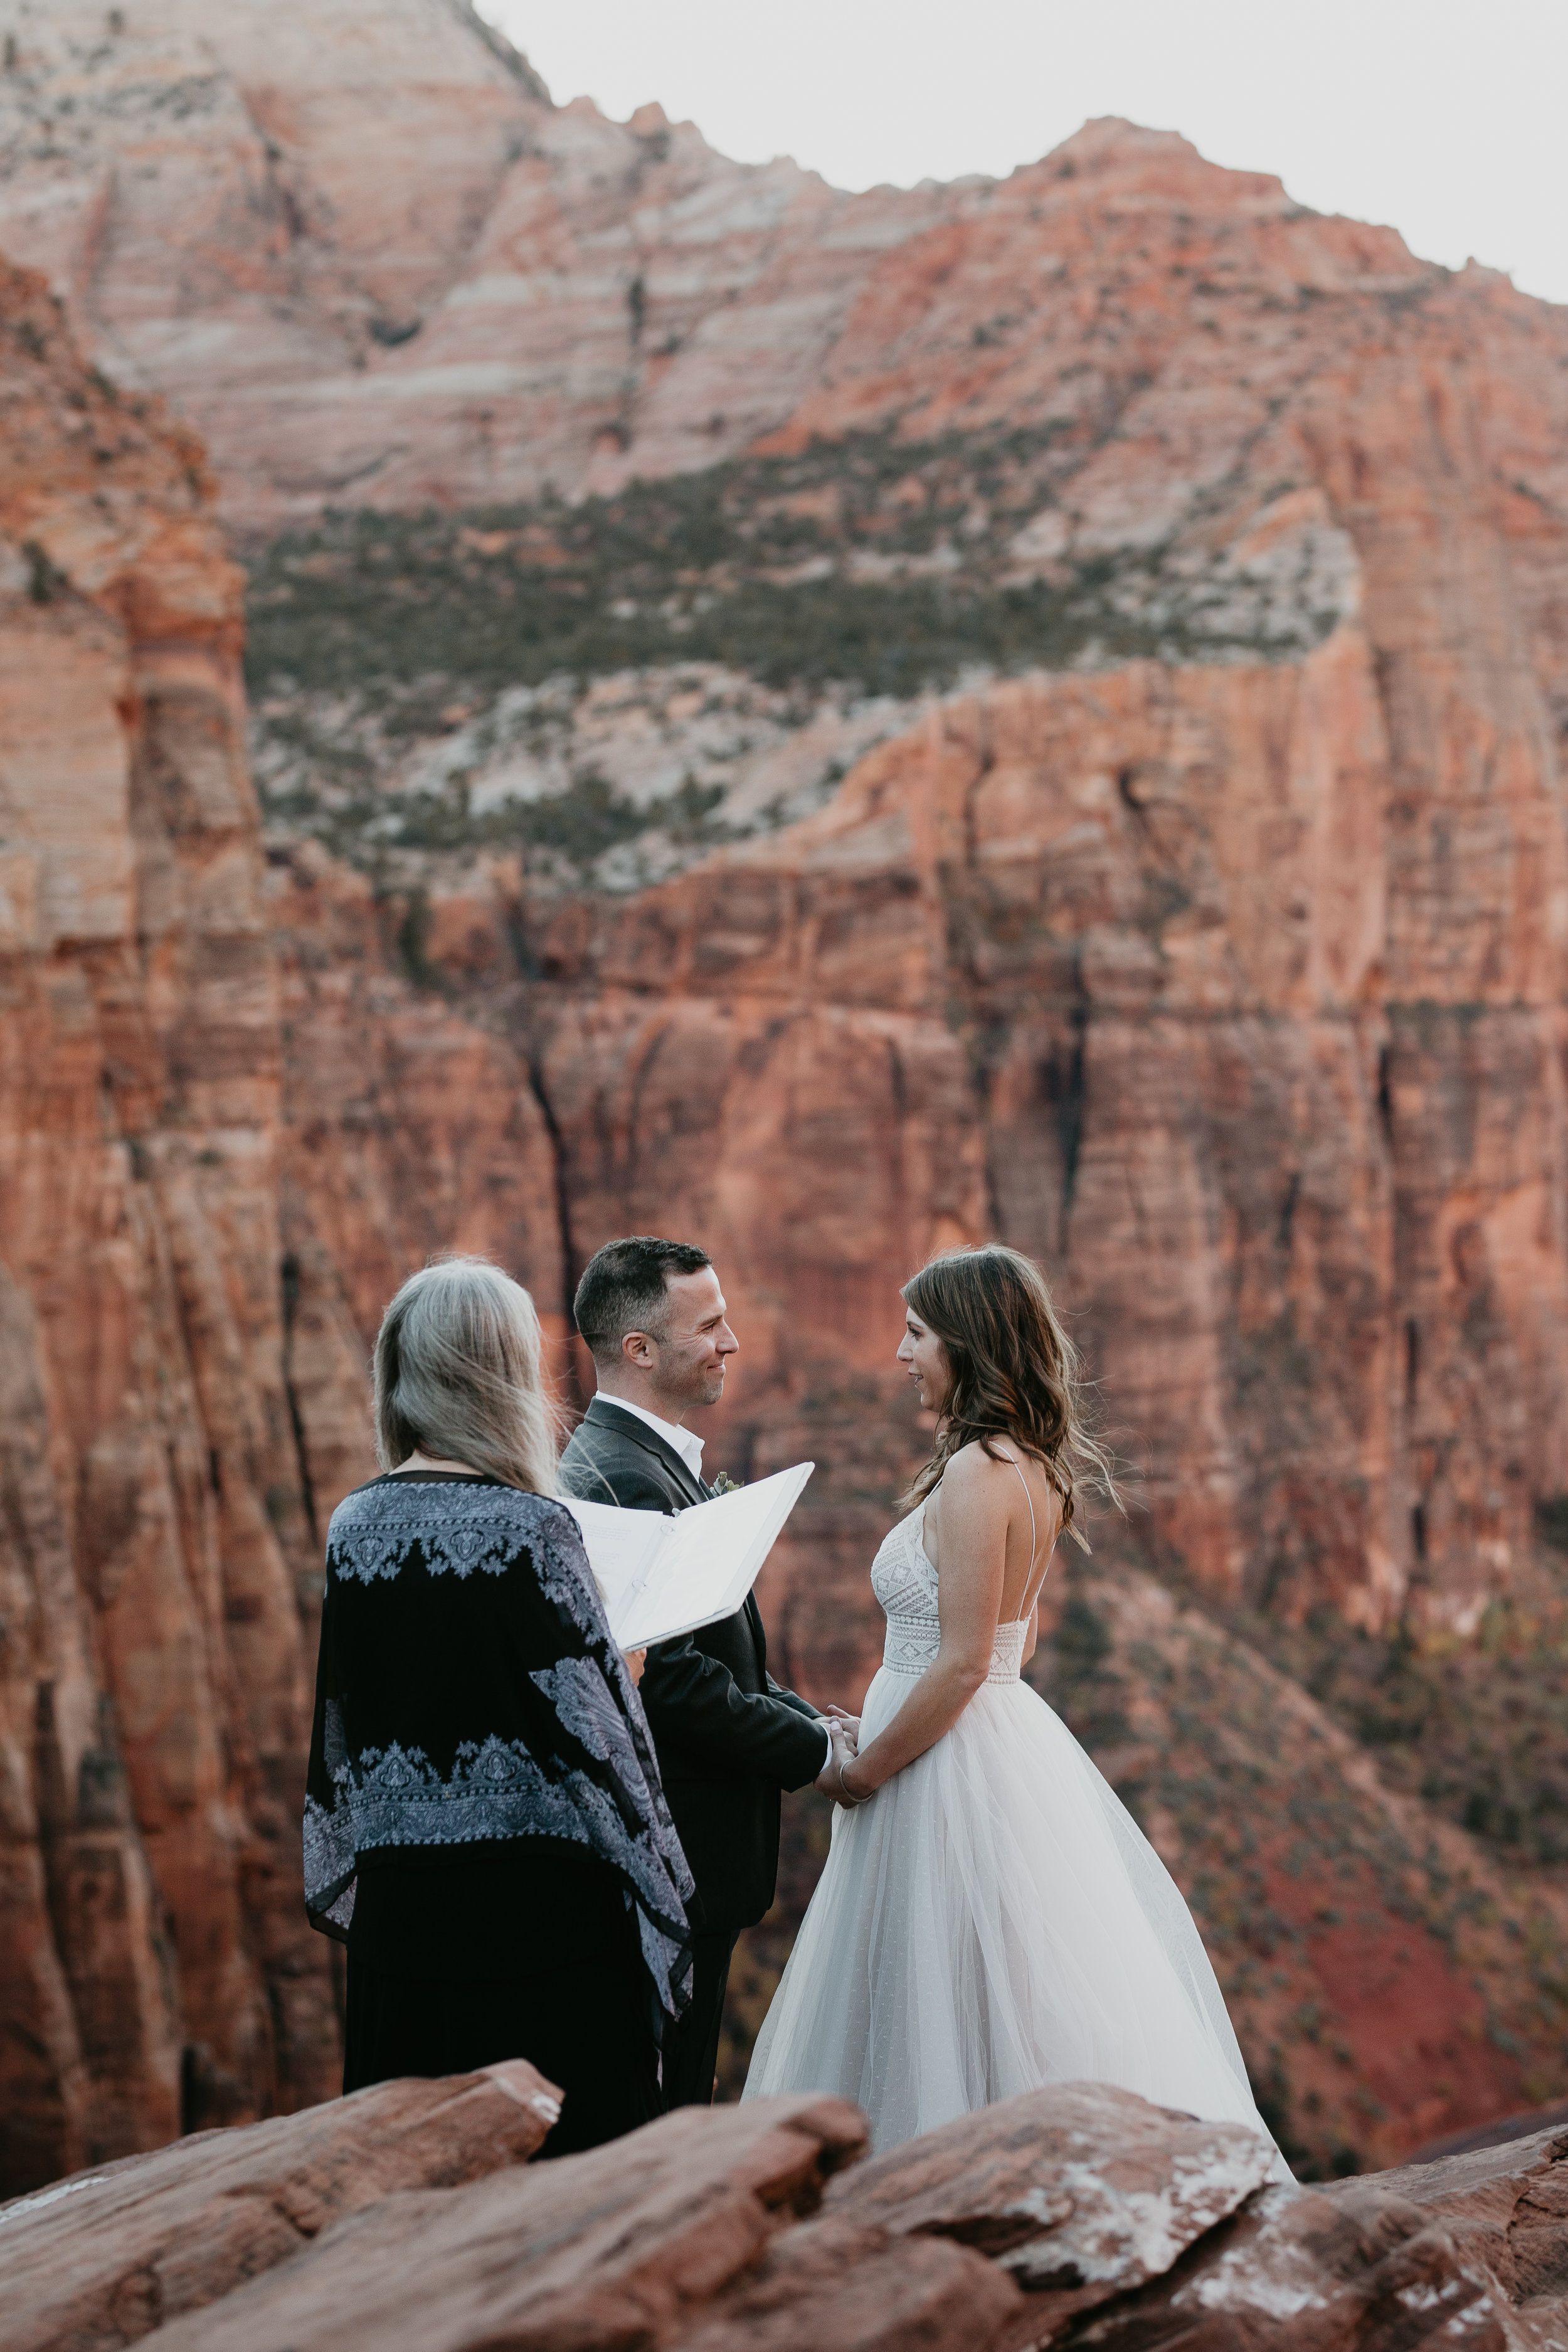 nicole-daacke-photography-zion-national-park-elopement-photographer-canyon-overlook-trail-elope-hiking-adventure-wedding-photos-fall-utah-red-rock-canyon-stgeorge-eloping-photographer-54.jpg